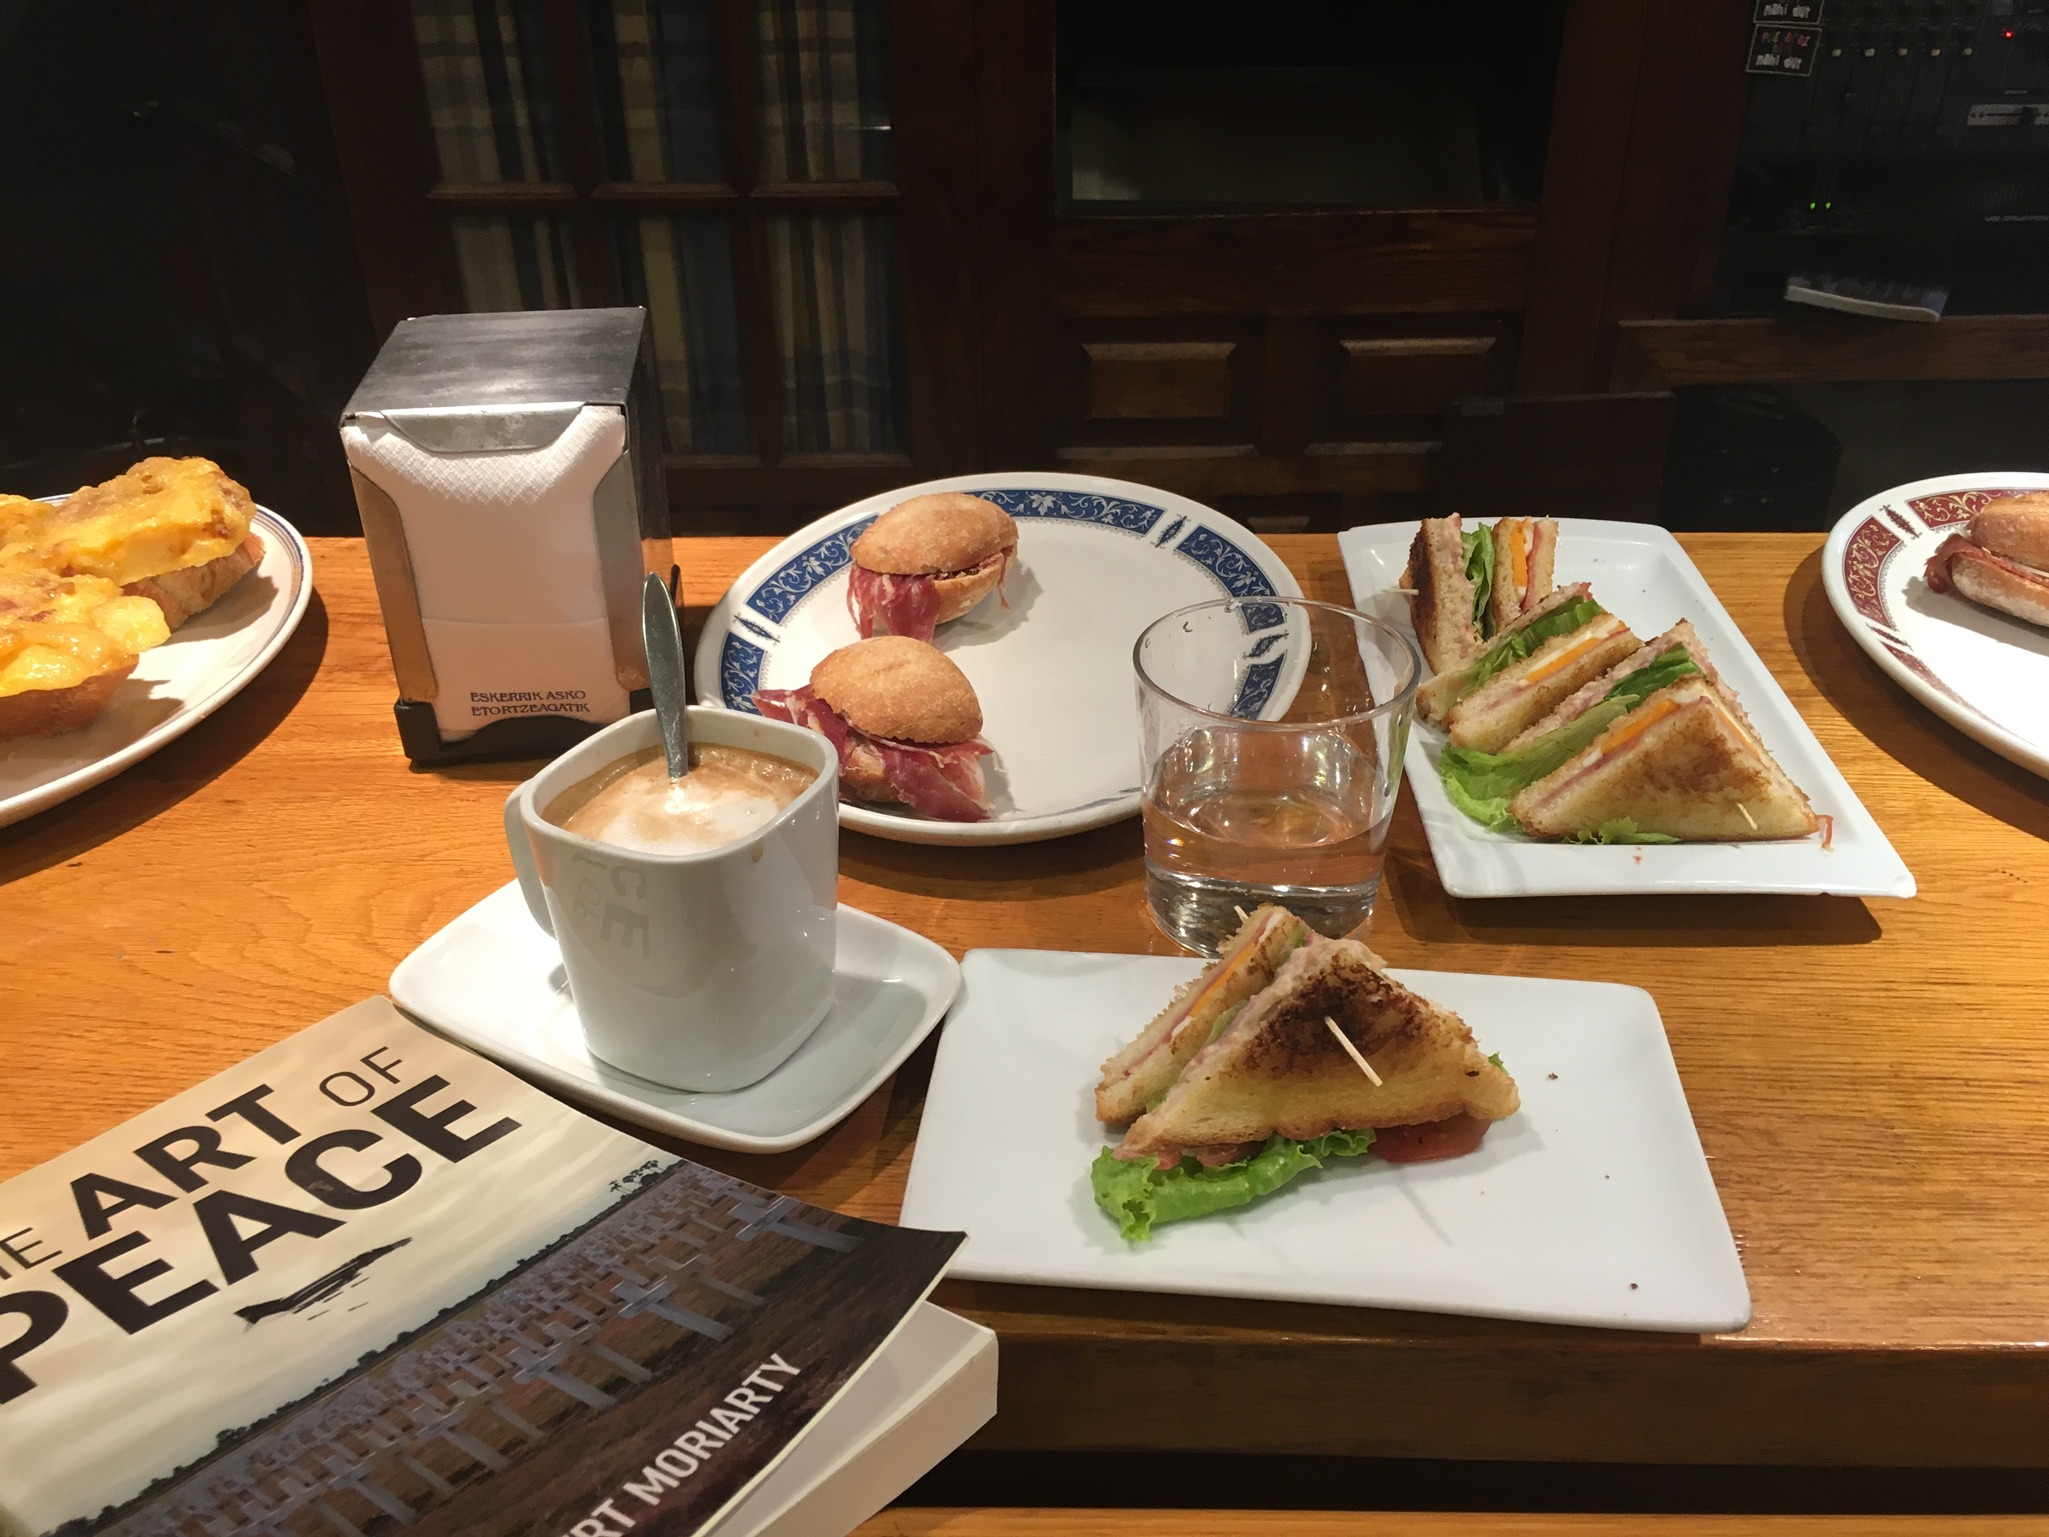 The perfect breakfast; - strong coffee, a fresh glass of water, two pintxos and a somewhat pretentious book that aims at solving world peace. you give up after the intro and just enjoy life around you. the clatter of plates, chatter from the locals, blaring noise from the TV, traffic from outside.everything is just so... normal and you're part of the tapestry. you're one of the locals, immersed in the daily life, and yet you're a visitor for a few days, maybe a week or two, passing through. it's an oddly exciting feeling. But, the difference is that you're not a tourist. you're a local, someone who enjoys the small moments - and this is how the magic happens... how doors open.Pintxo is the Basque spelling of the Spanish Pincho, deriving from the verb